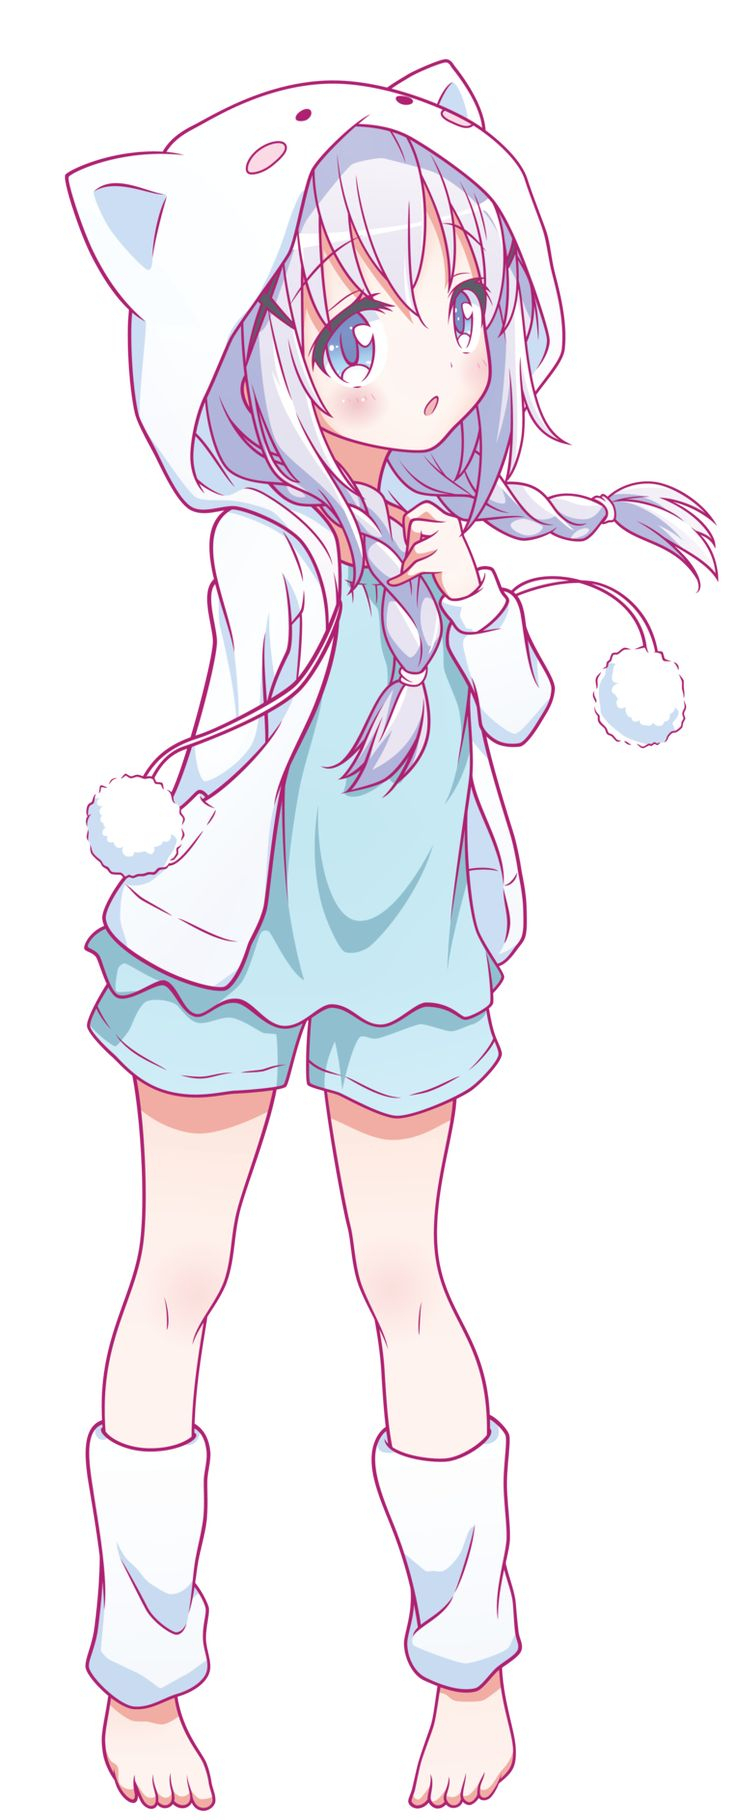 736x1820 Cute Anime Drawings Best Ideas About Anime Girl Drawings